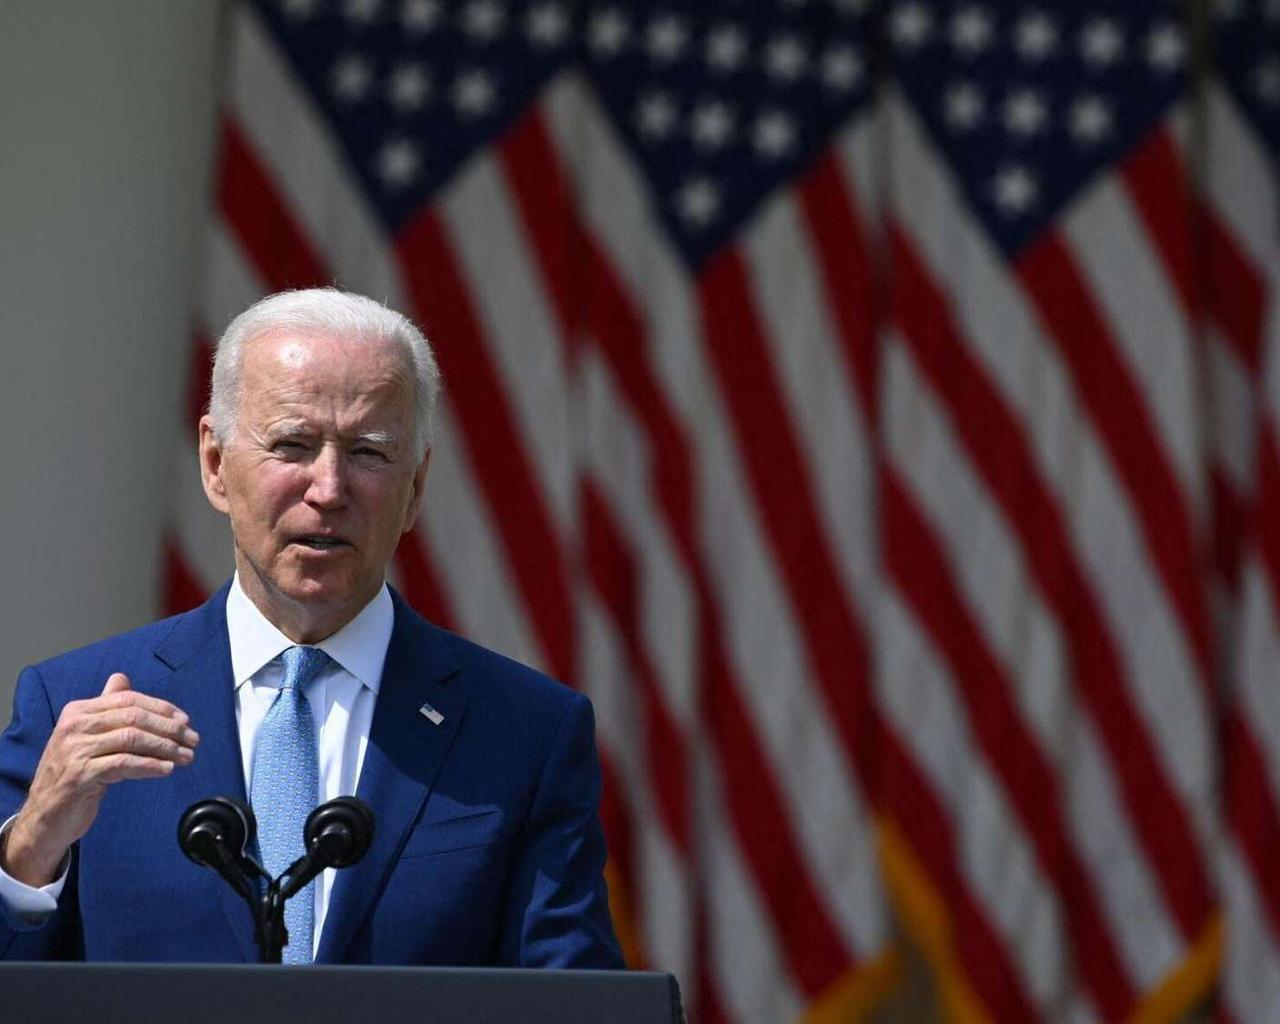 Biden calls for 'peace and calm' in wake of Daunte Wright's shooting in Minnesota